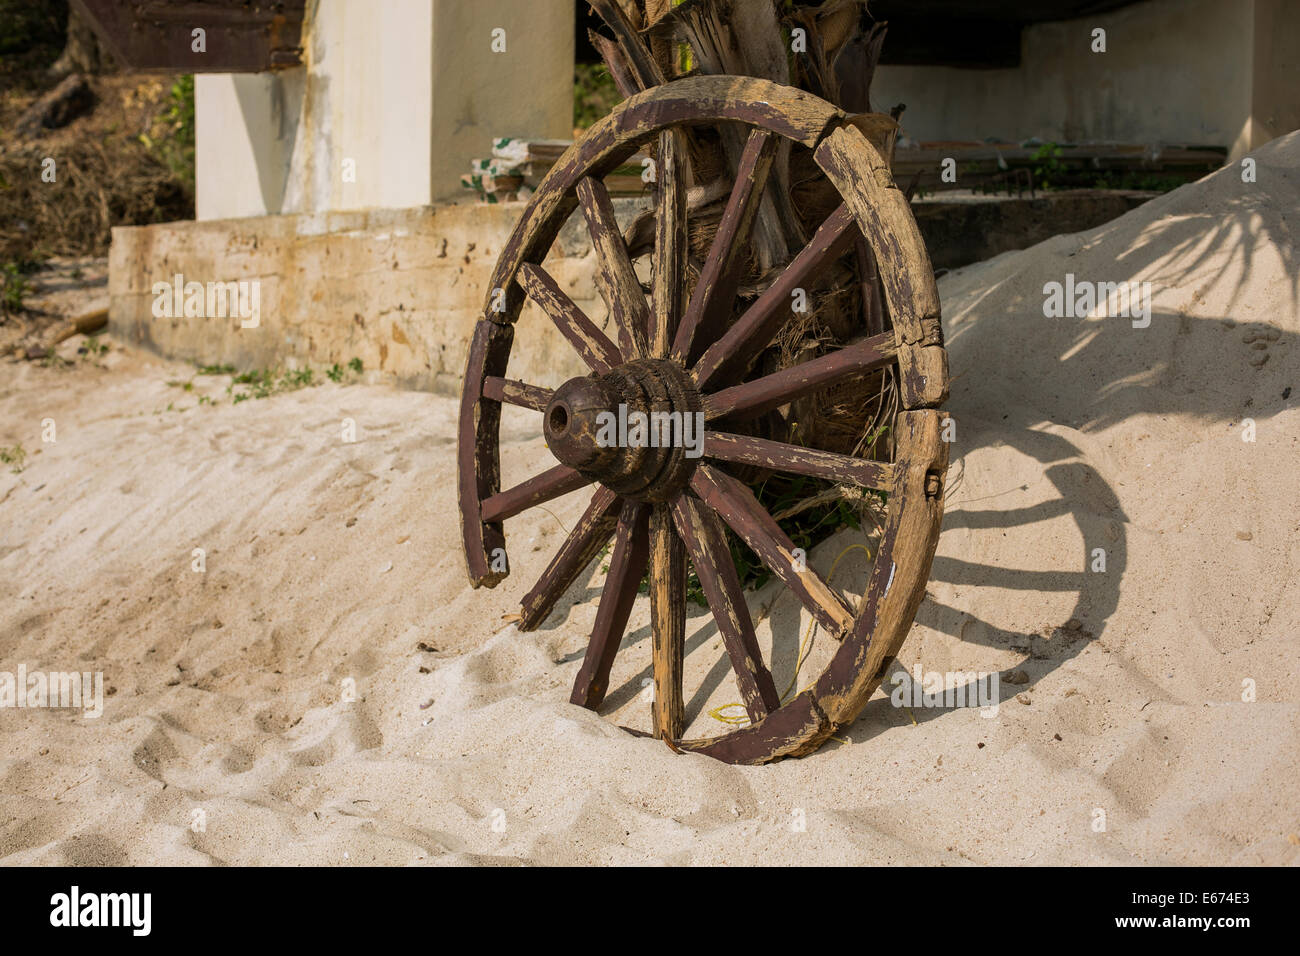 Old brown wooden wheel on sand beach.Stock Photo